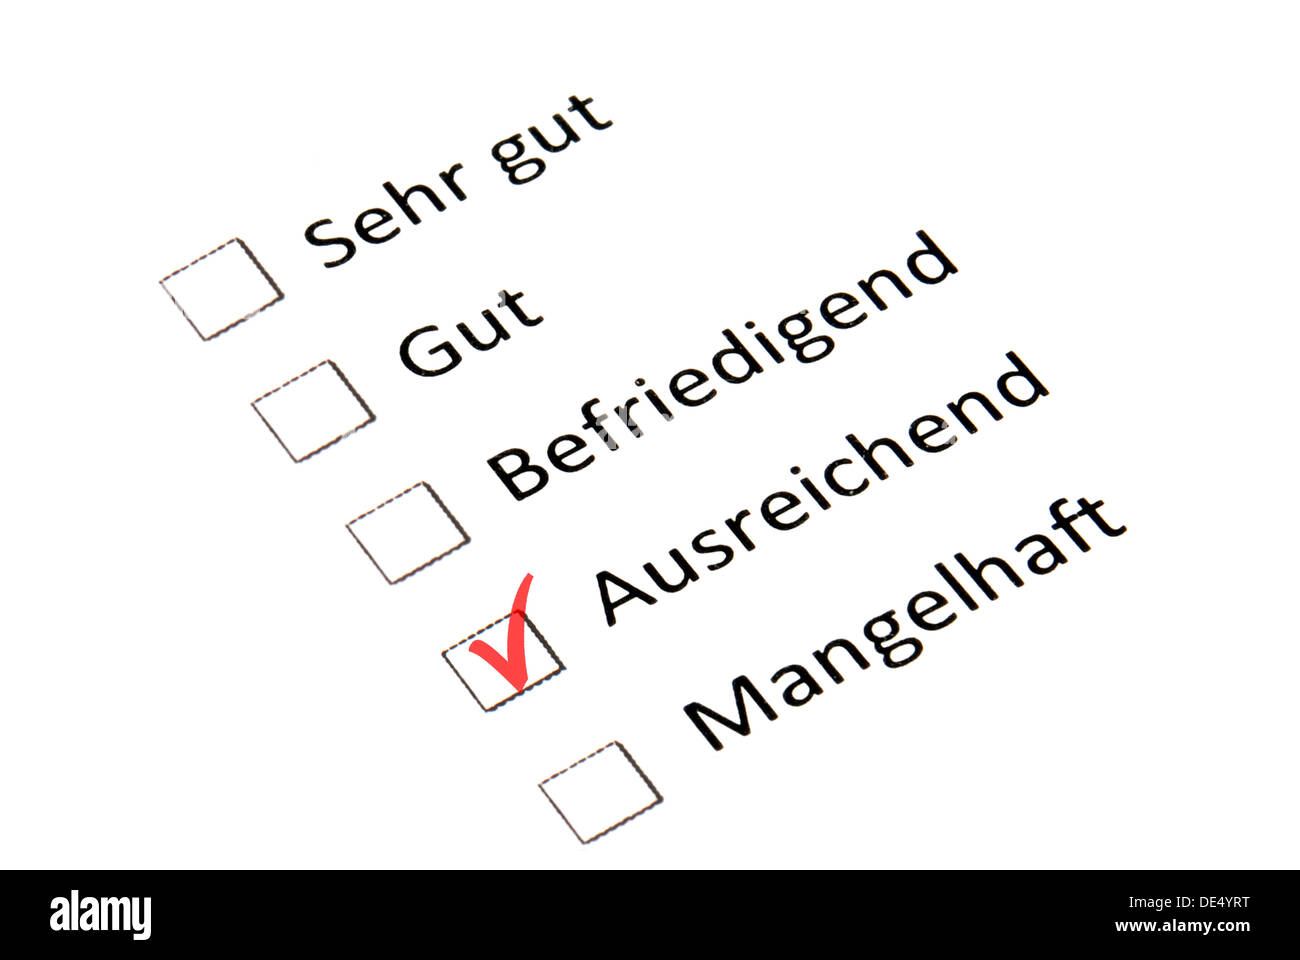 Feedback form with good evaluation, symbolic image for adequate qualification - Stock Image